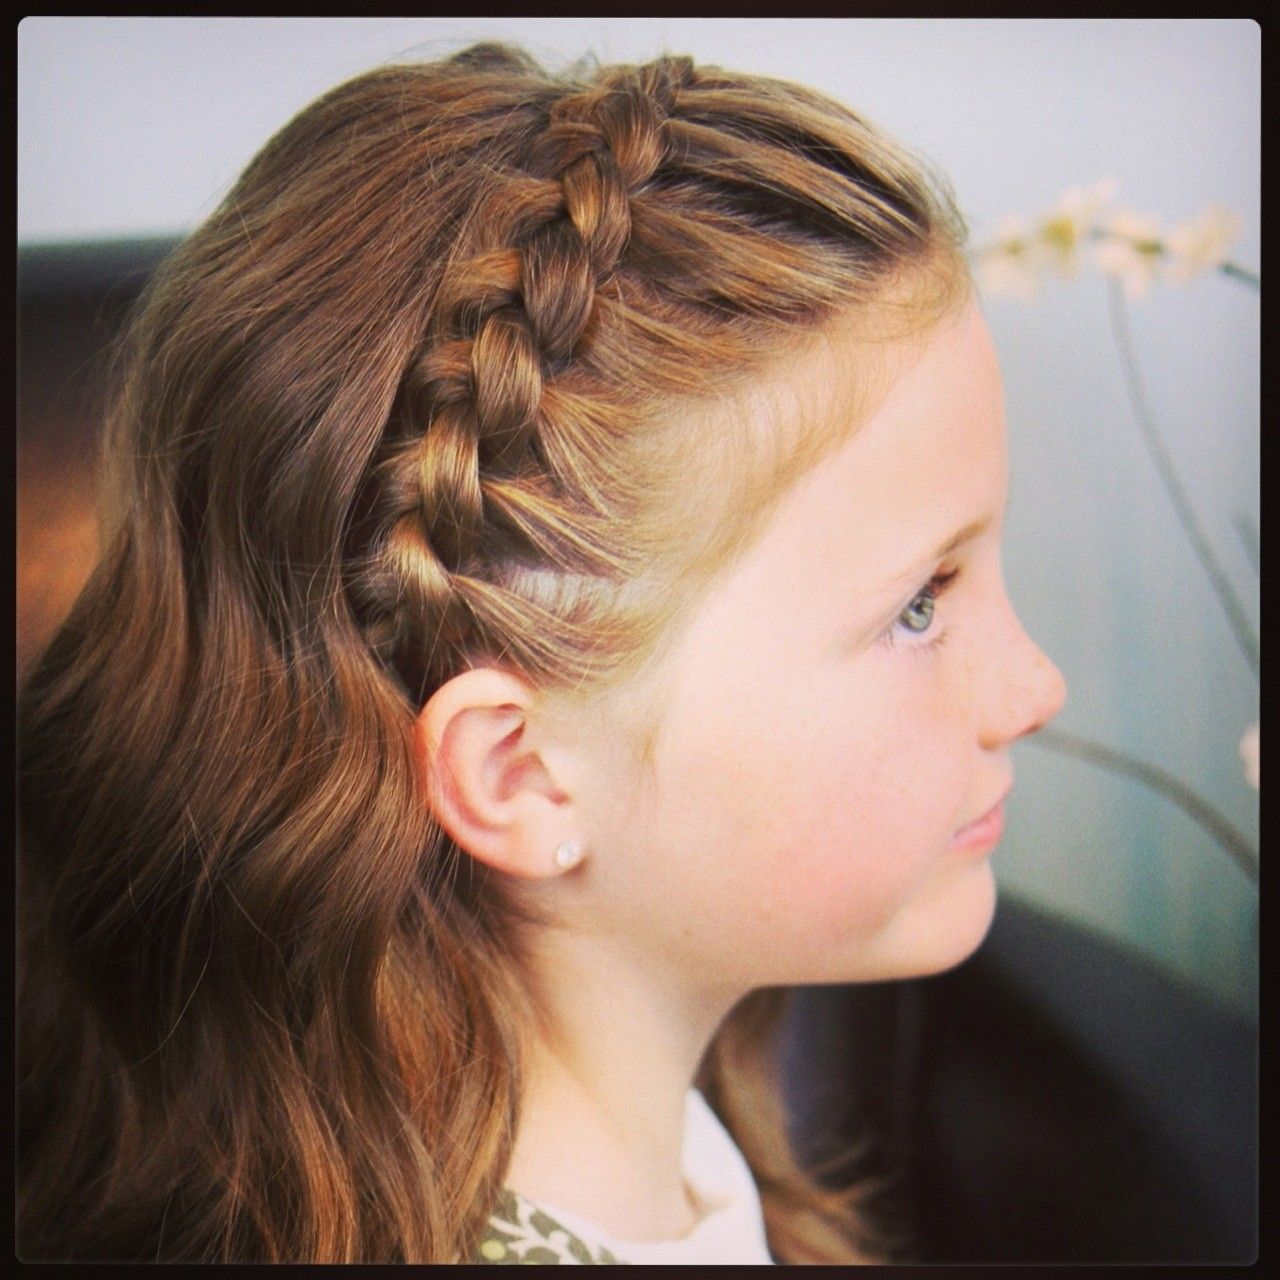 Stylish+Haircuts+for+Little+Girls | Easy Hairstyles Hairstyles 2014 ...